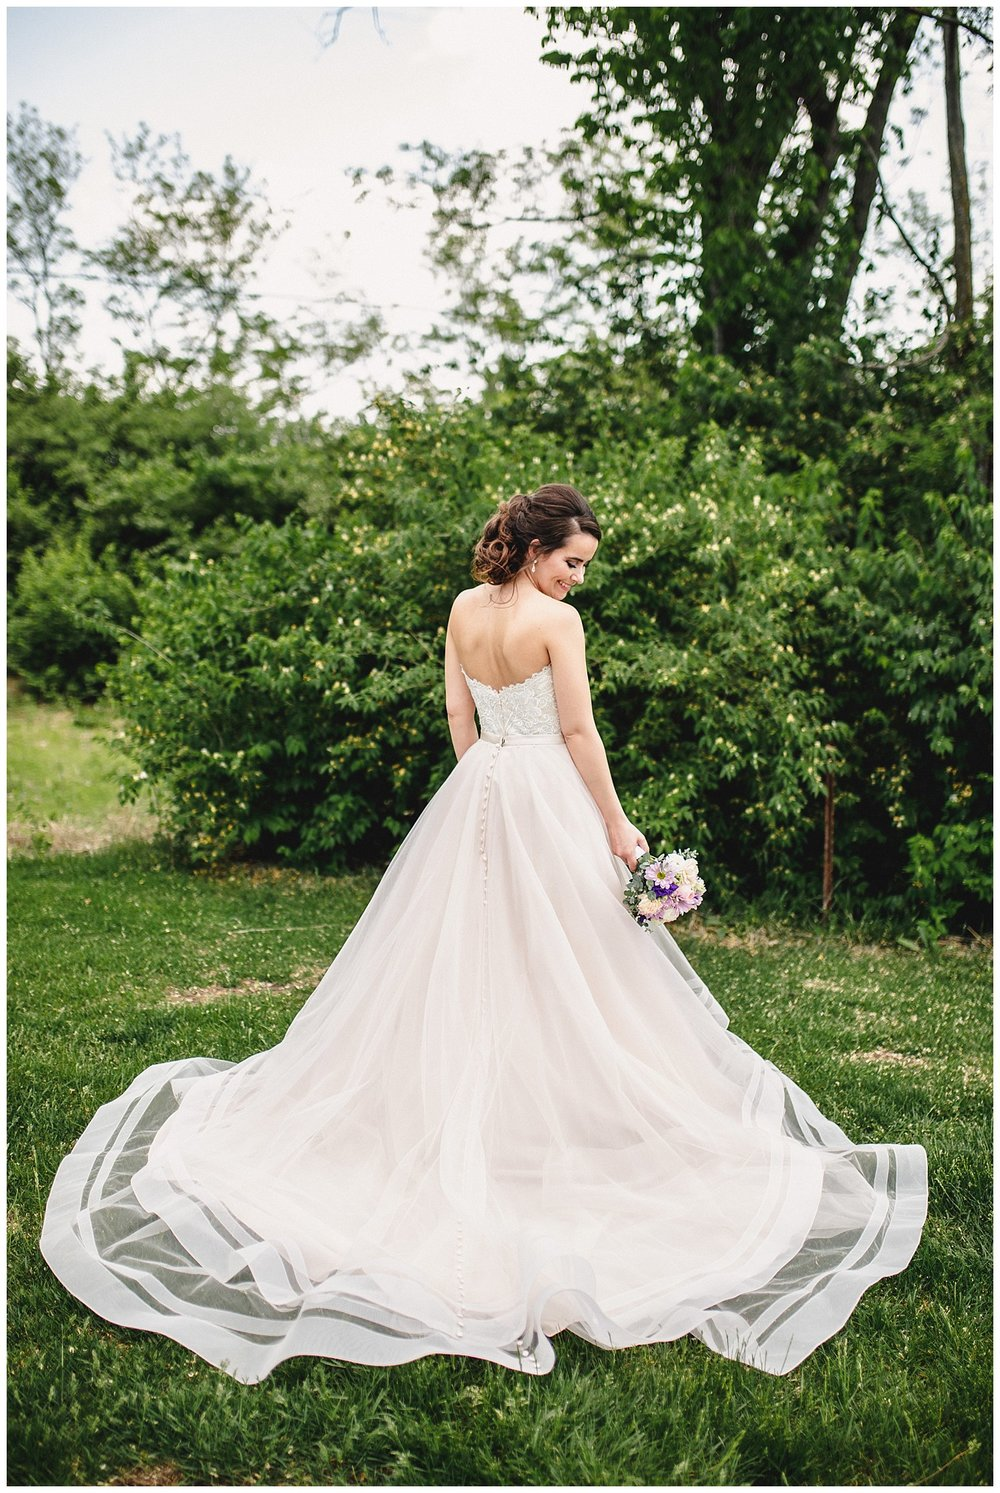 Tiffany_Greens_Golf_Club_Kansas_City_Wedding_Nikki_David_Spring_Wedding_Kelsey_Diane_Photography_0018.jpg